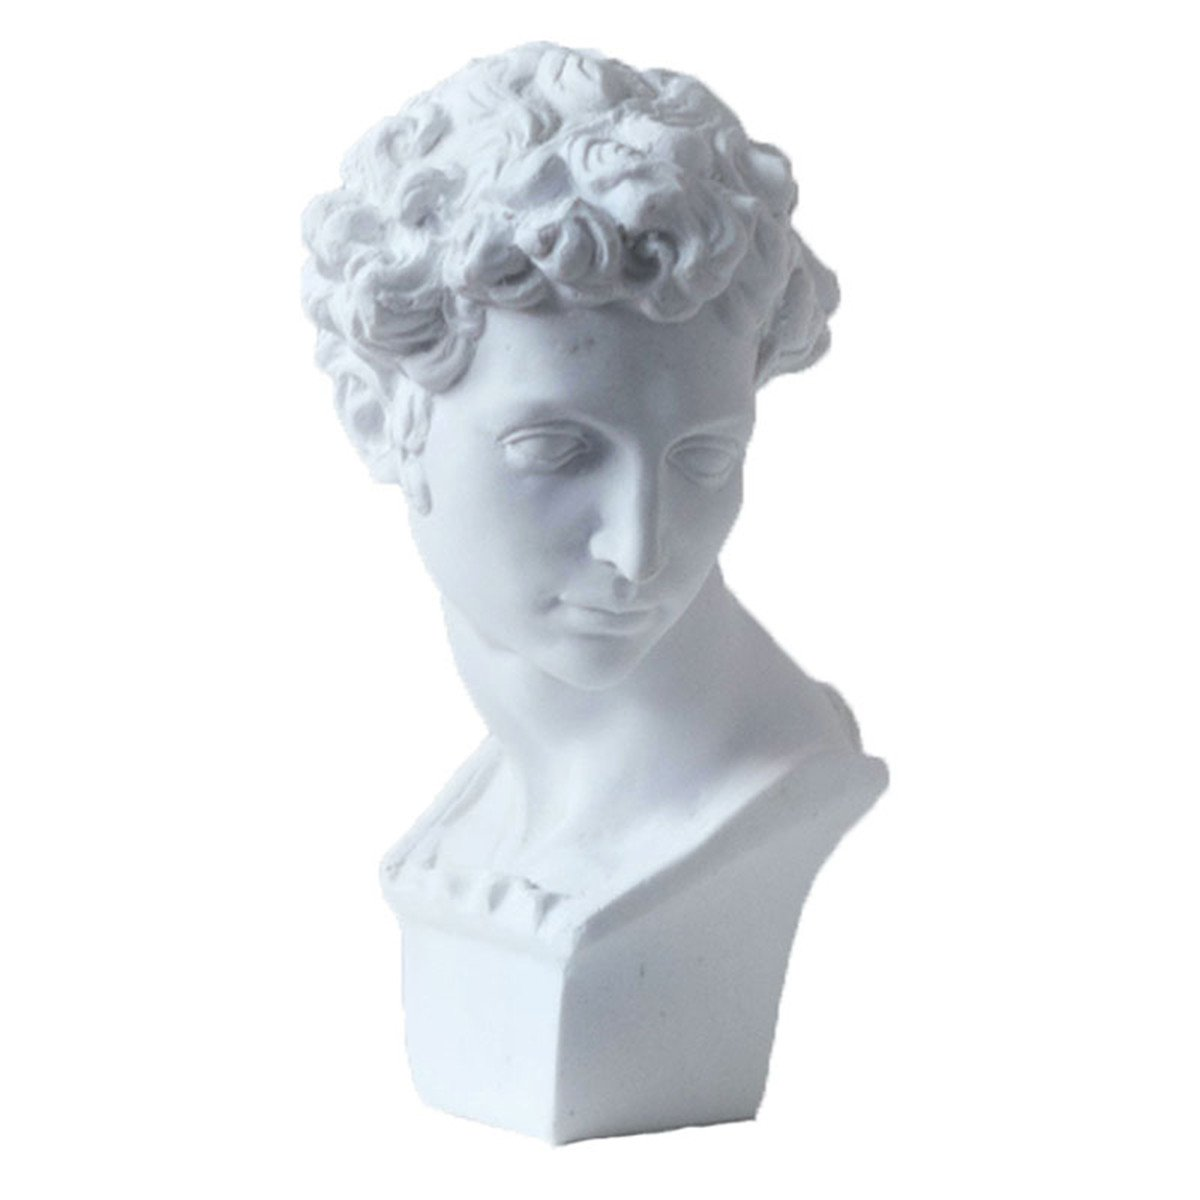 ECYC 6 Resin Busts of Giuliano de Medici Home Decor Office Crafts Room Ornaments Objects